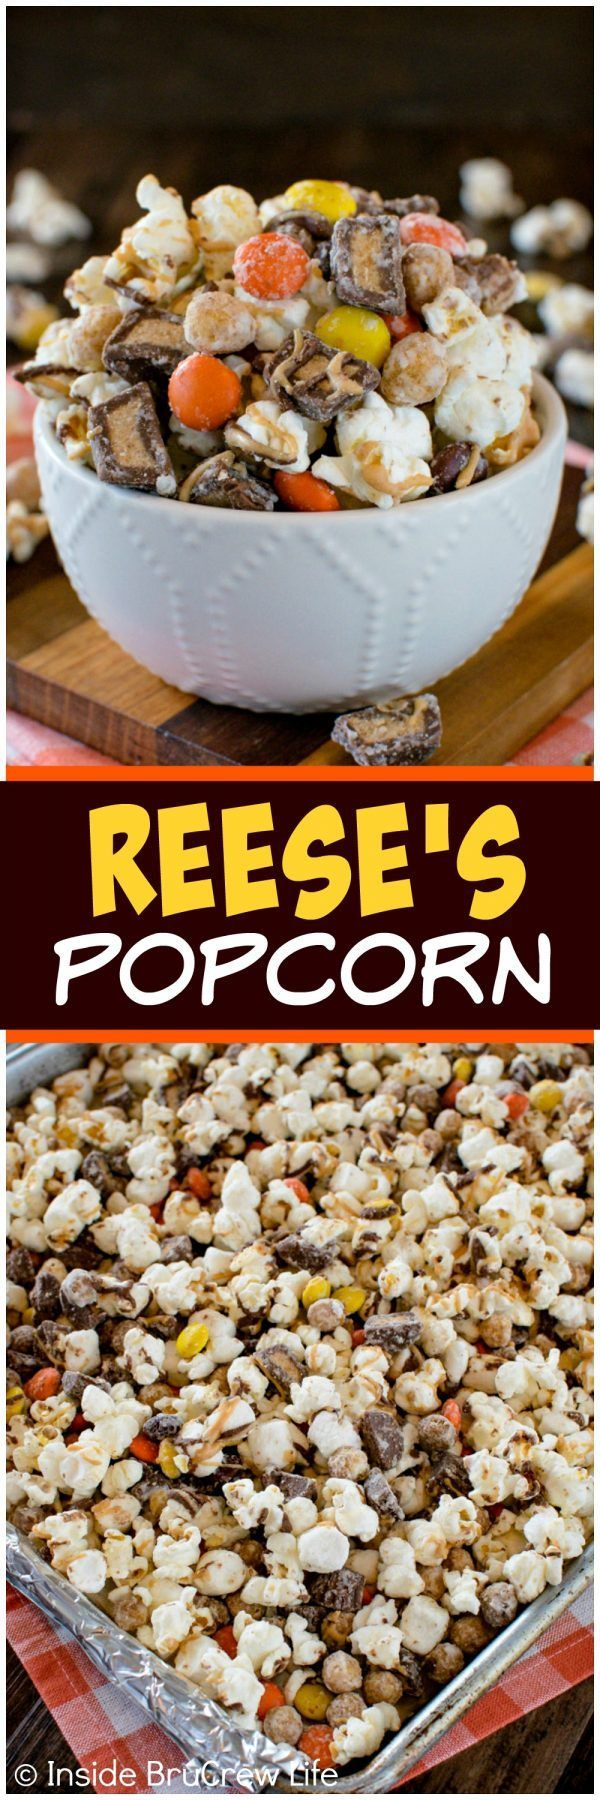 Reese's Popcorn - three times the peanut butter goodness in this easy no bake snack mix makes it disappear. Great recipe for munching on or giving as a gift! (Snack Mix)